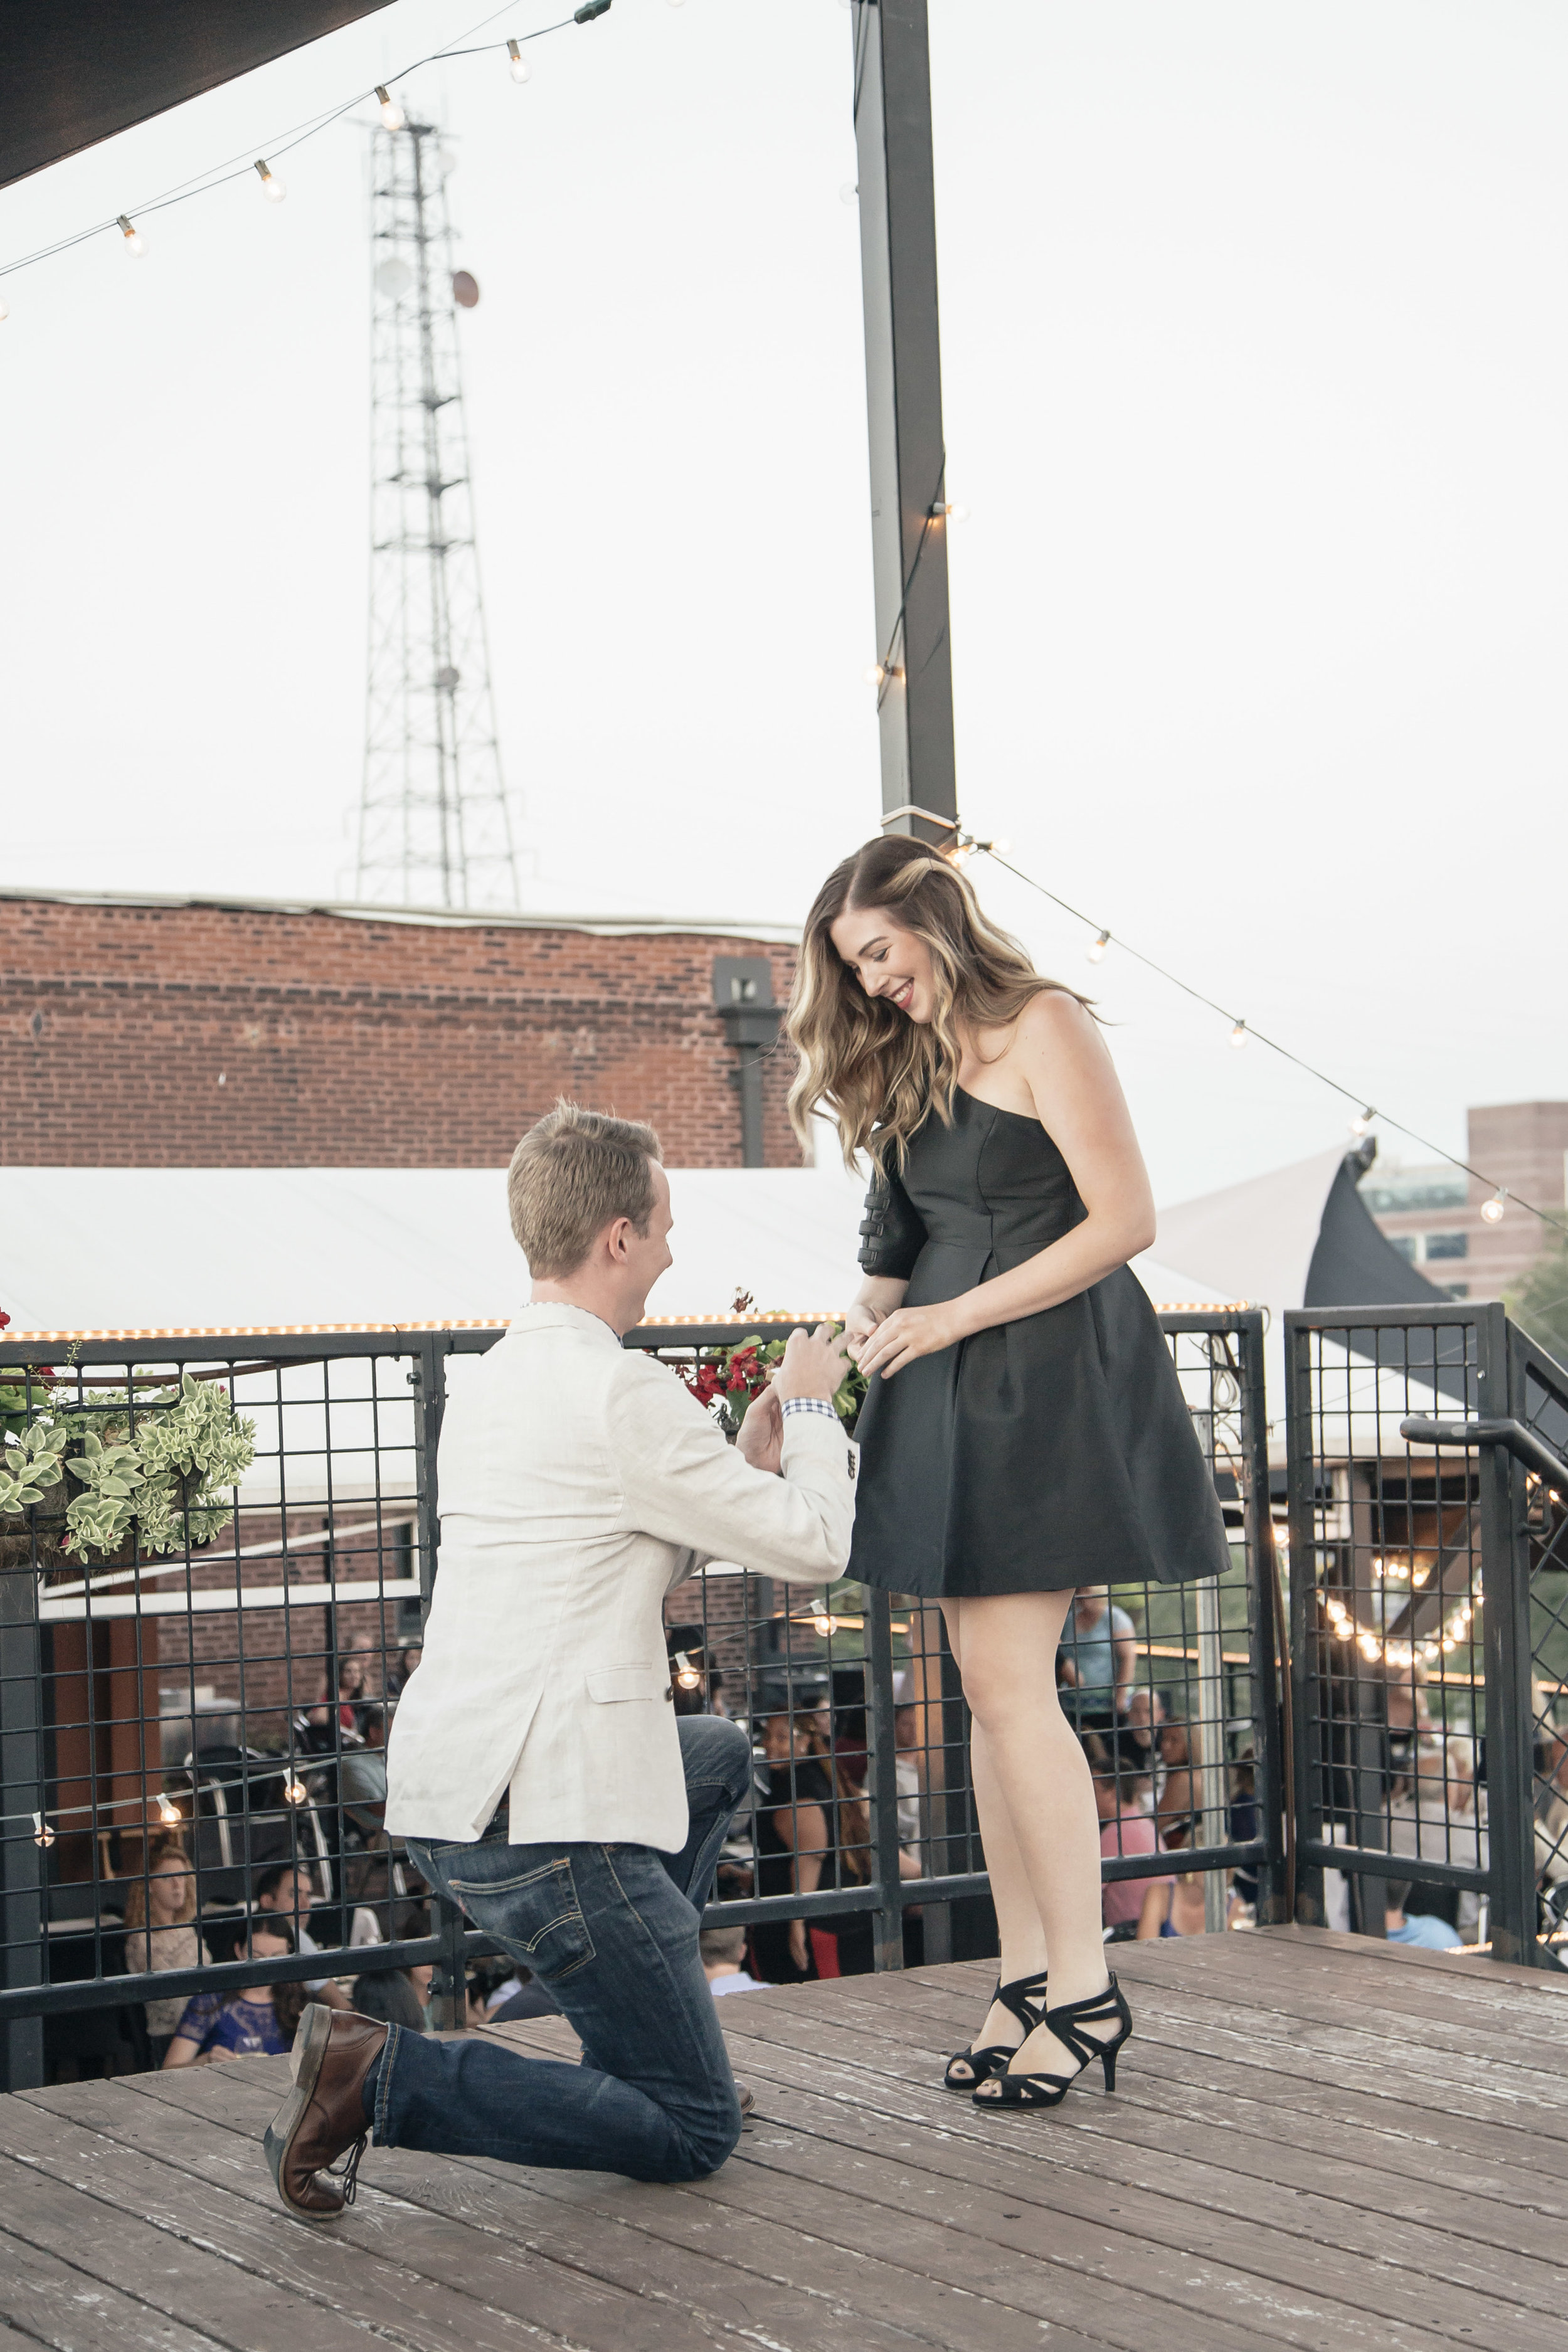 Rebecca_K_Clark_Photography_Engagement_Gallery_Web-3.JPG